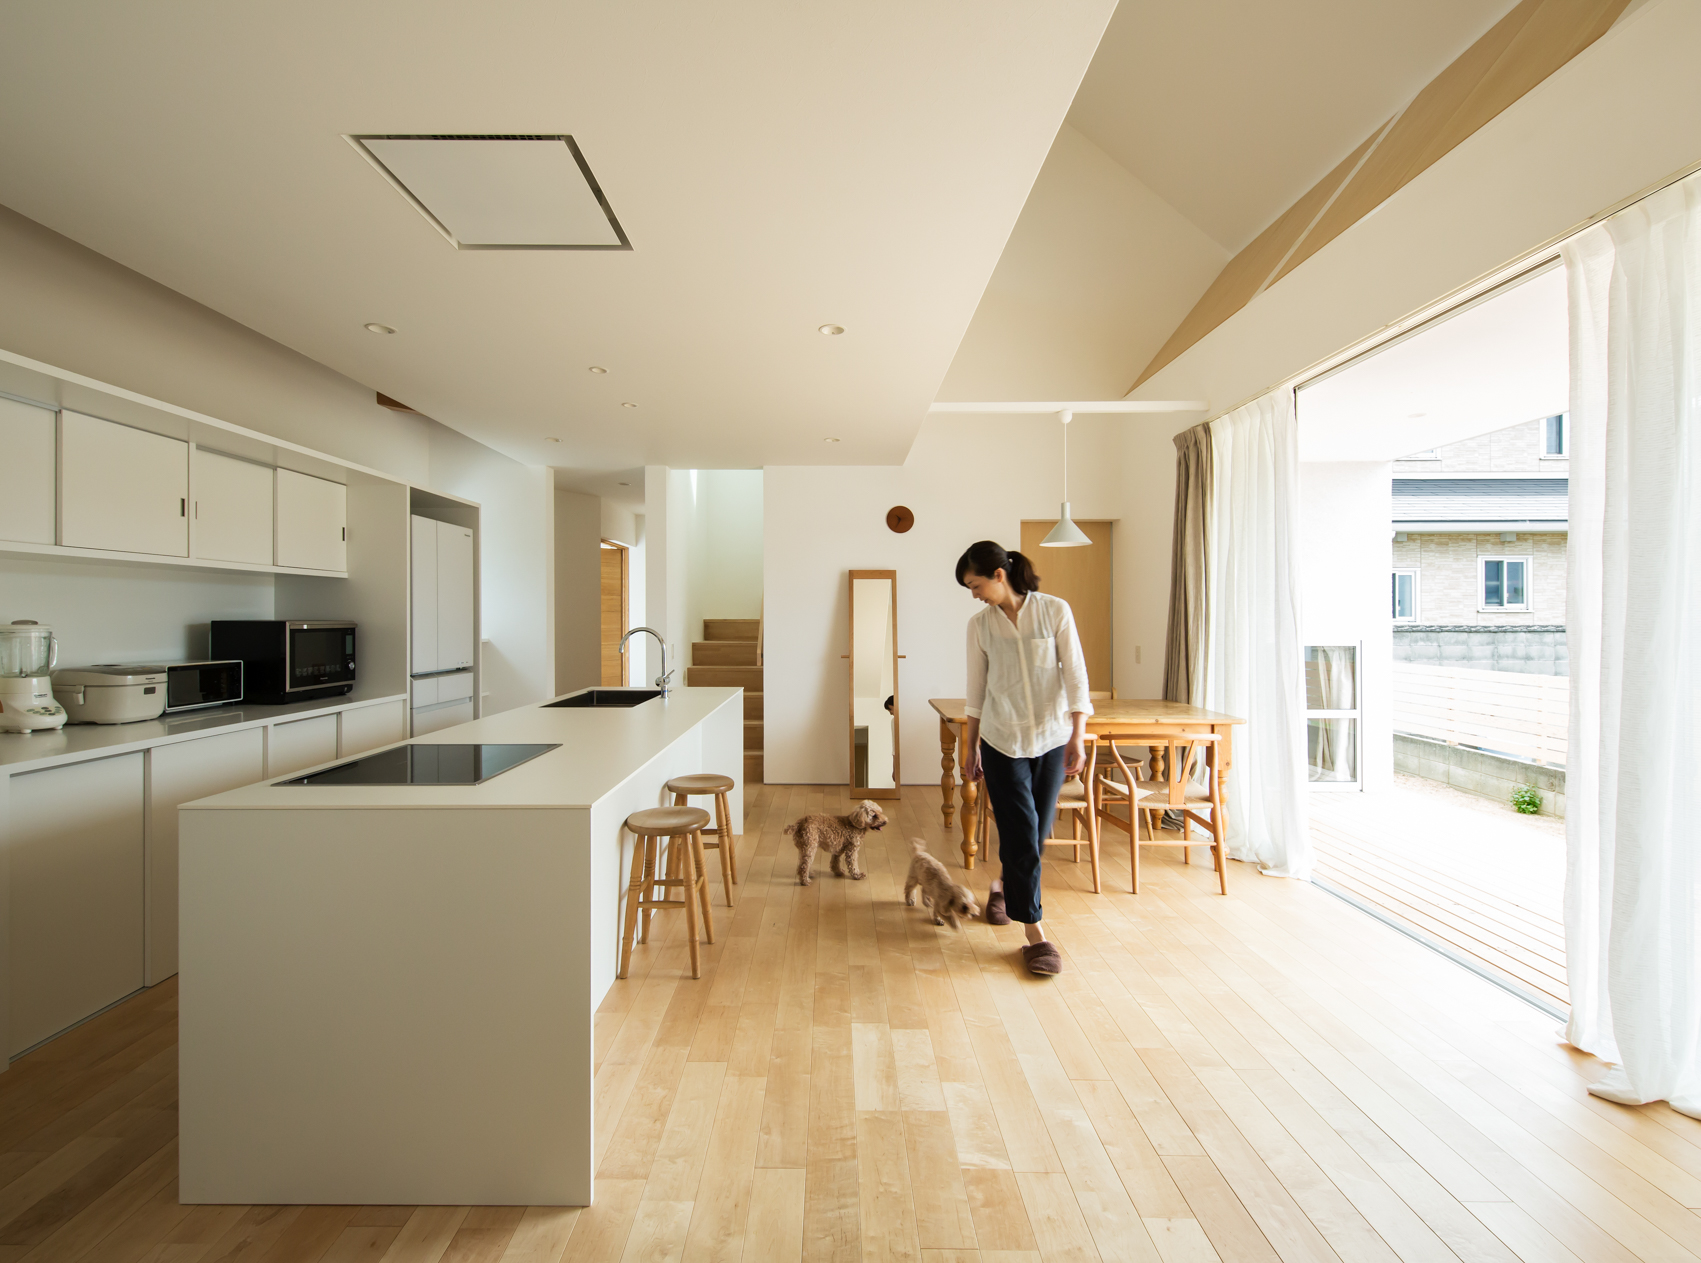 堀部直子 / Horibe Associates architect's